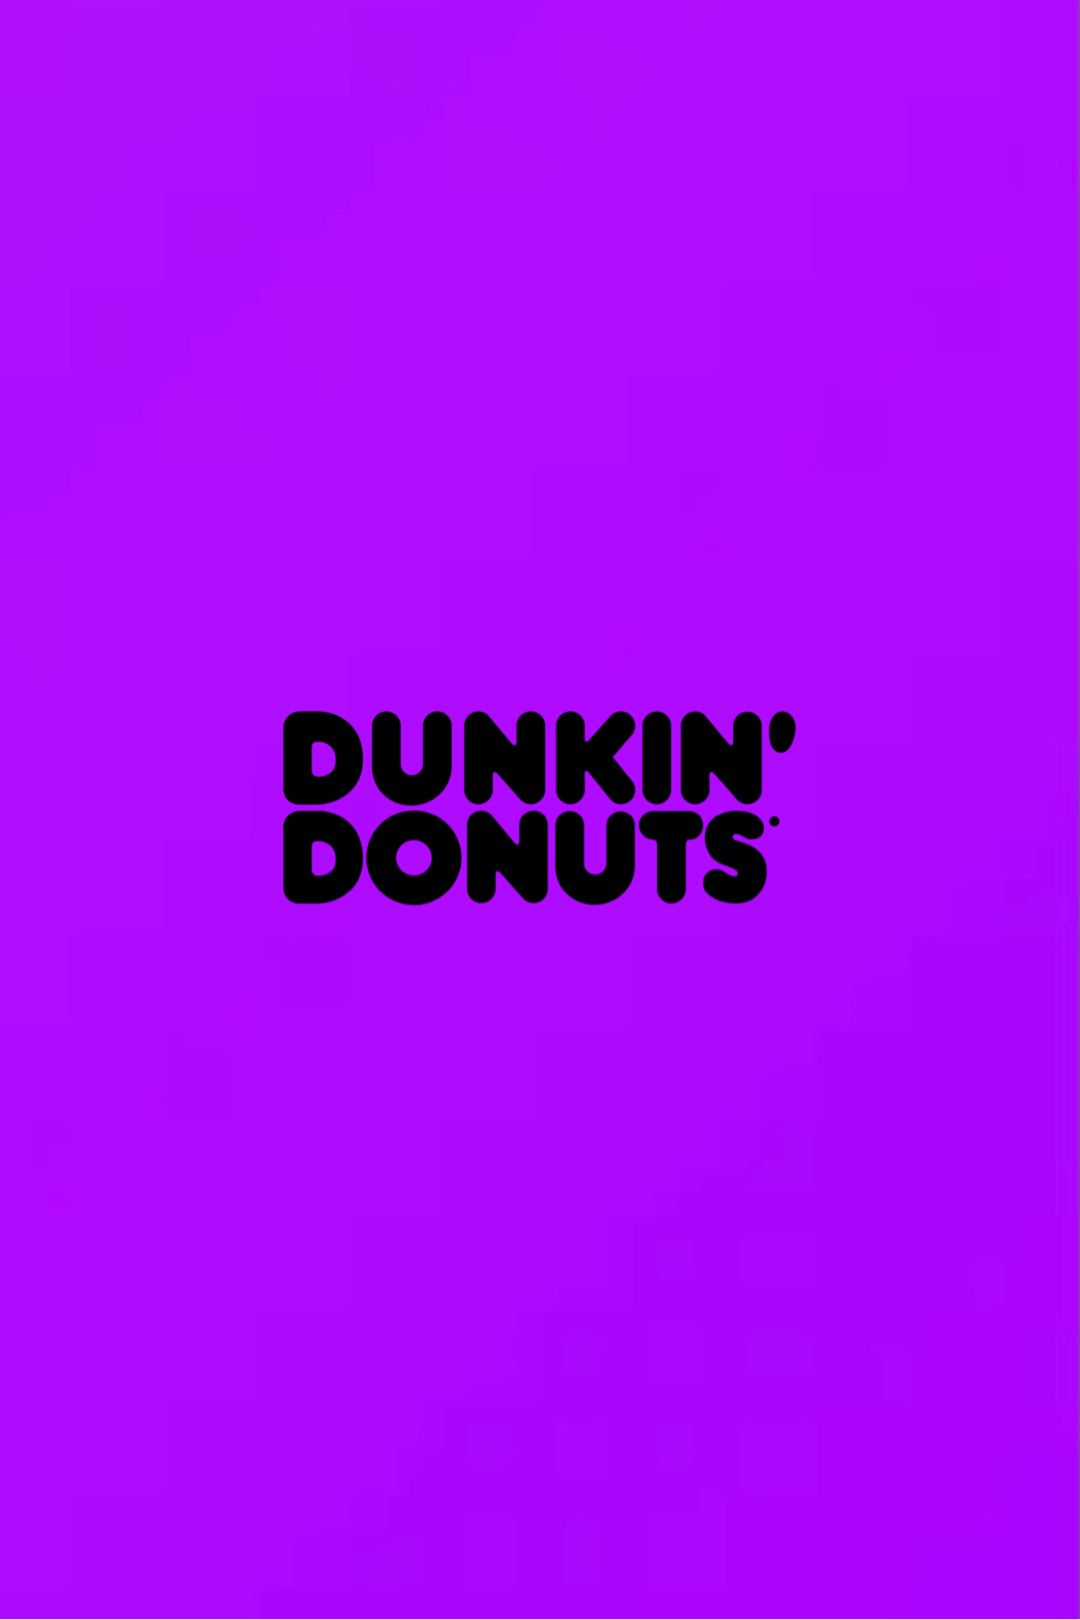 Pin By Icons On Neon Purple Neon Purple Dunkin Donuts Dunkin